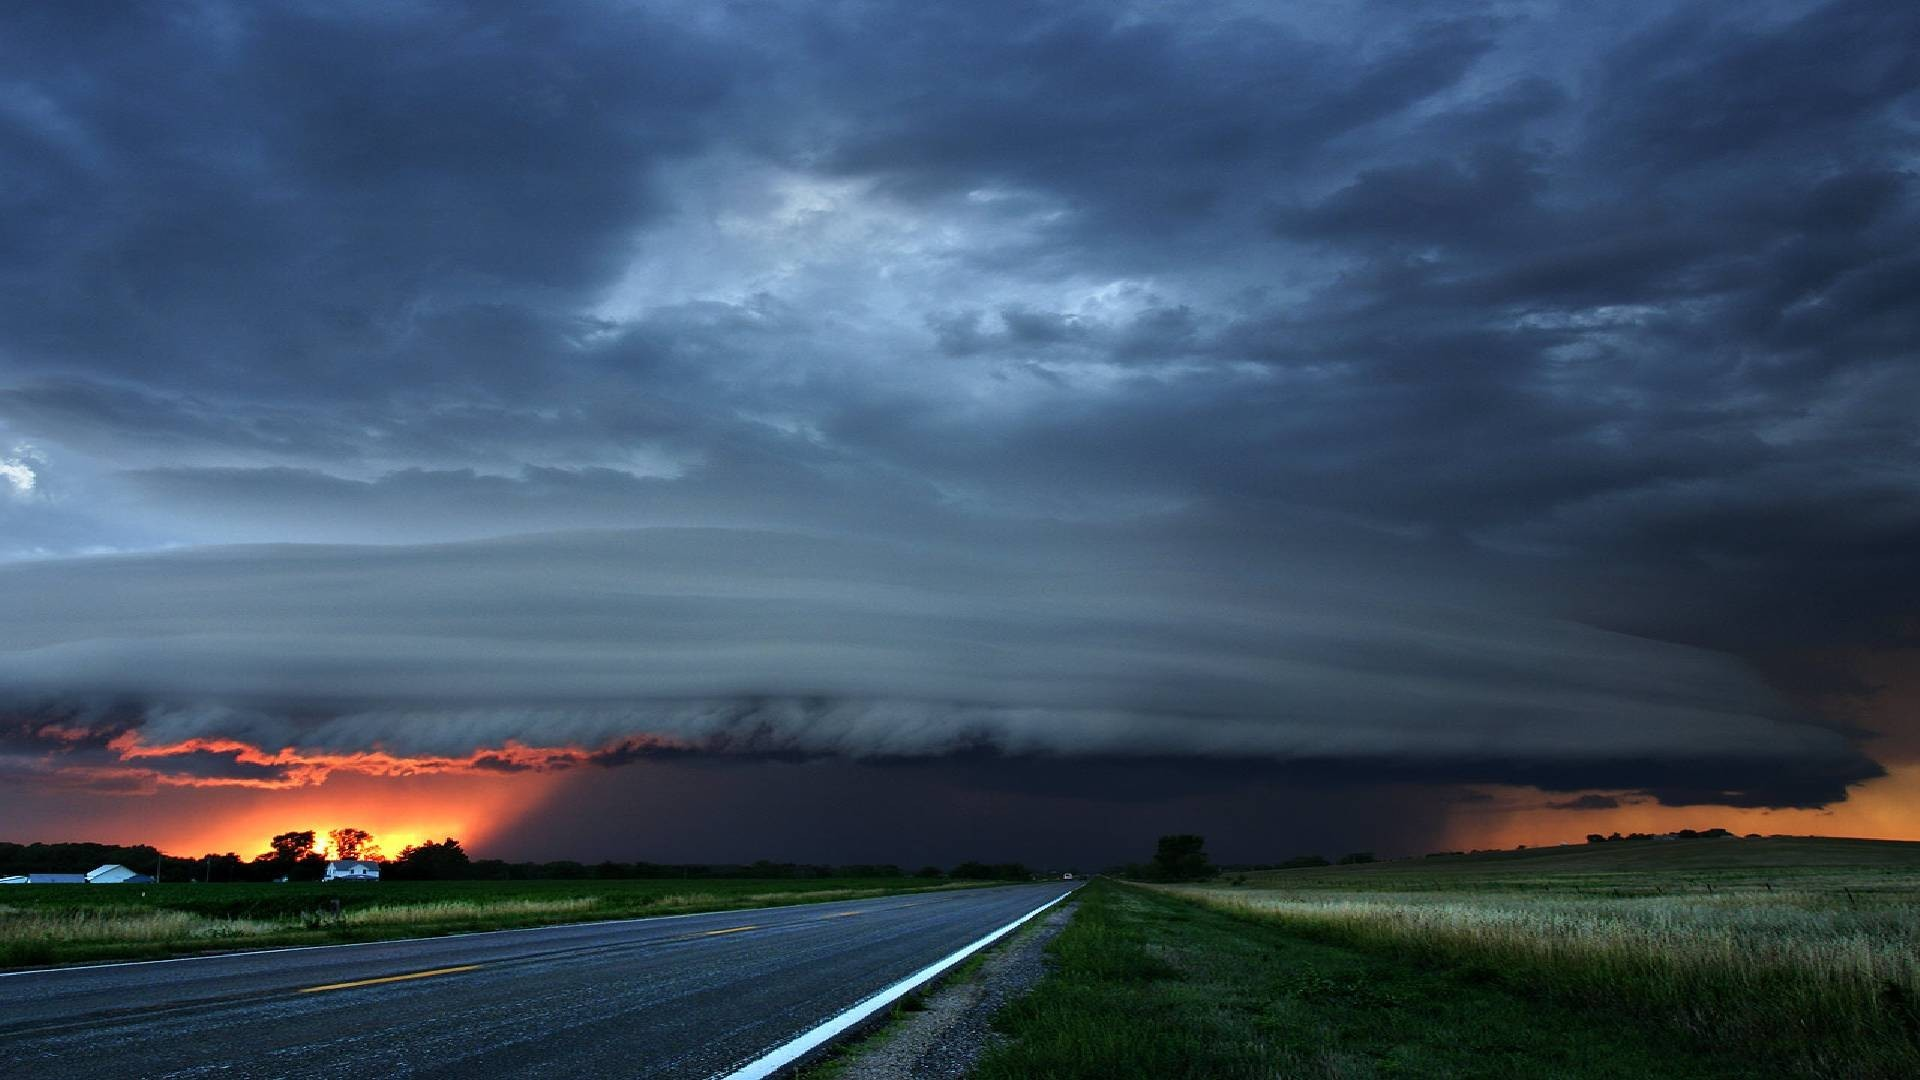 Res: 1920x1080, Clouds Fields Cool Road Sunset Storm Wallpaper Sky Night Hd -